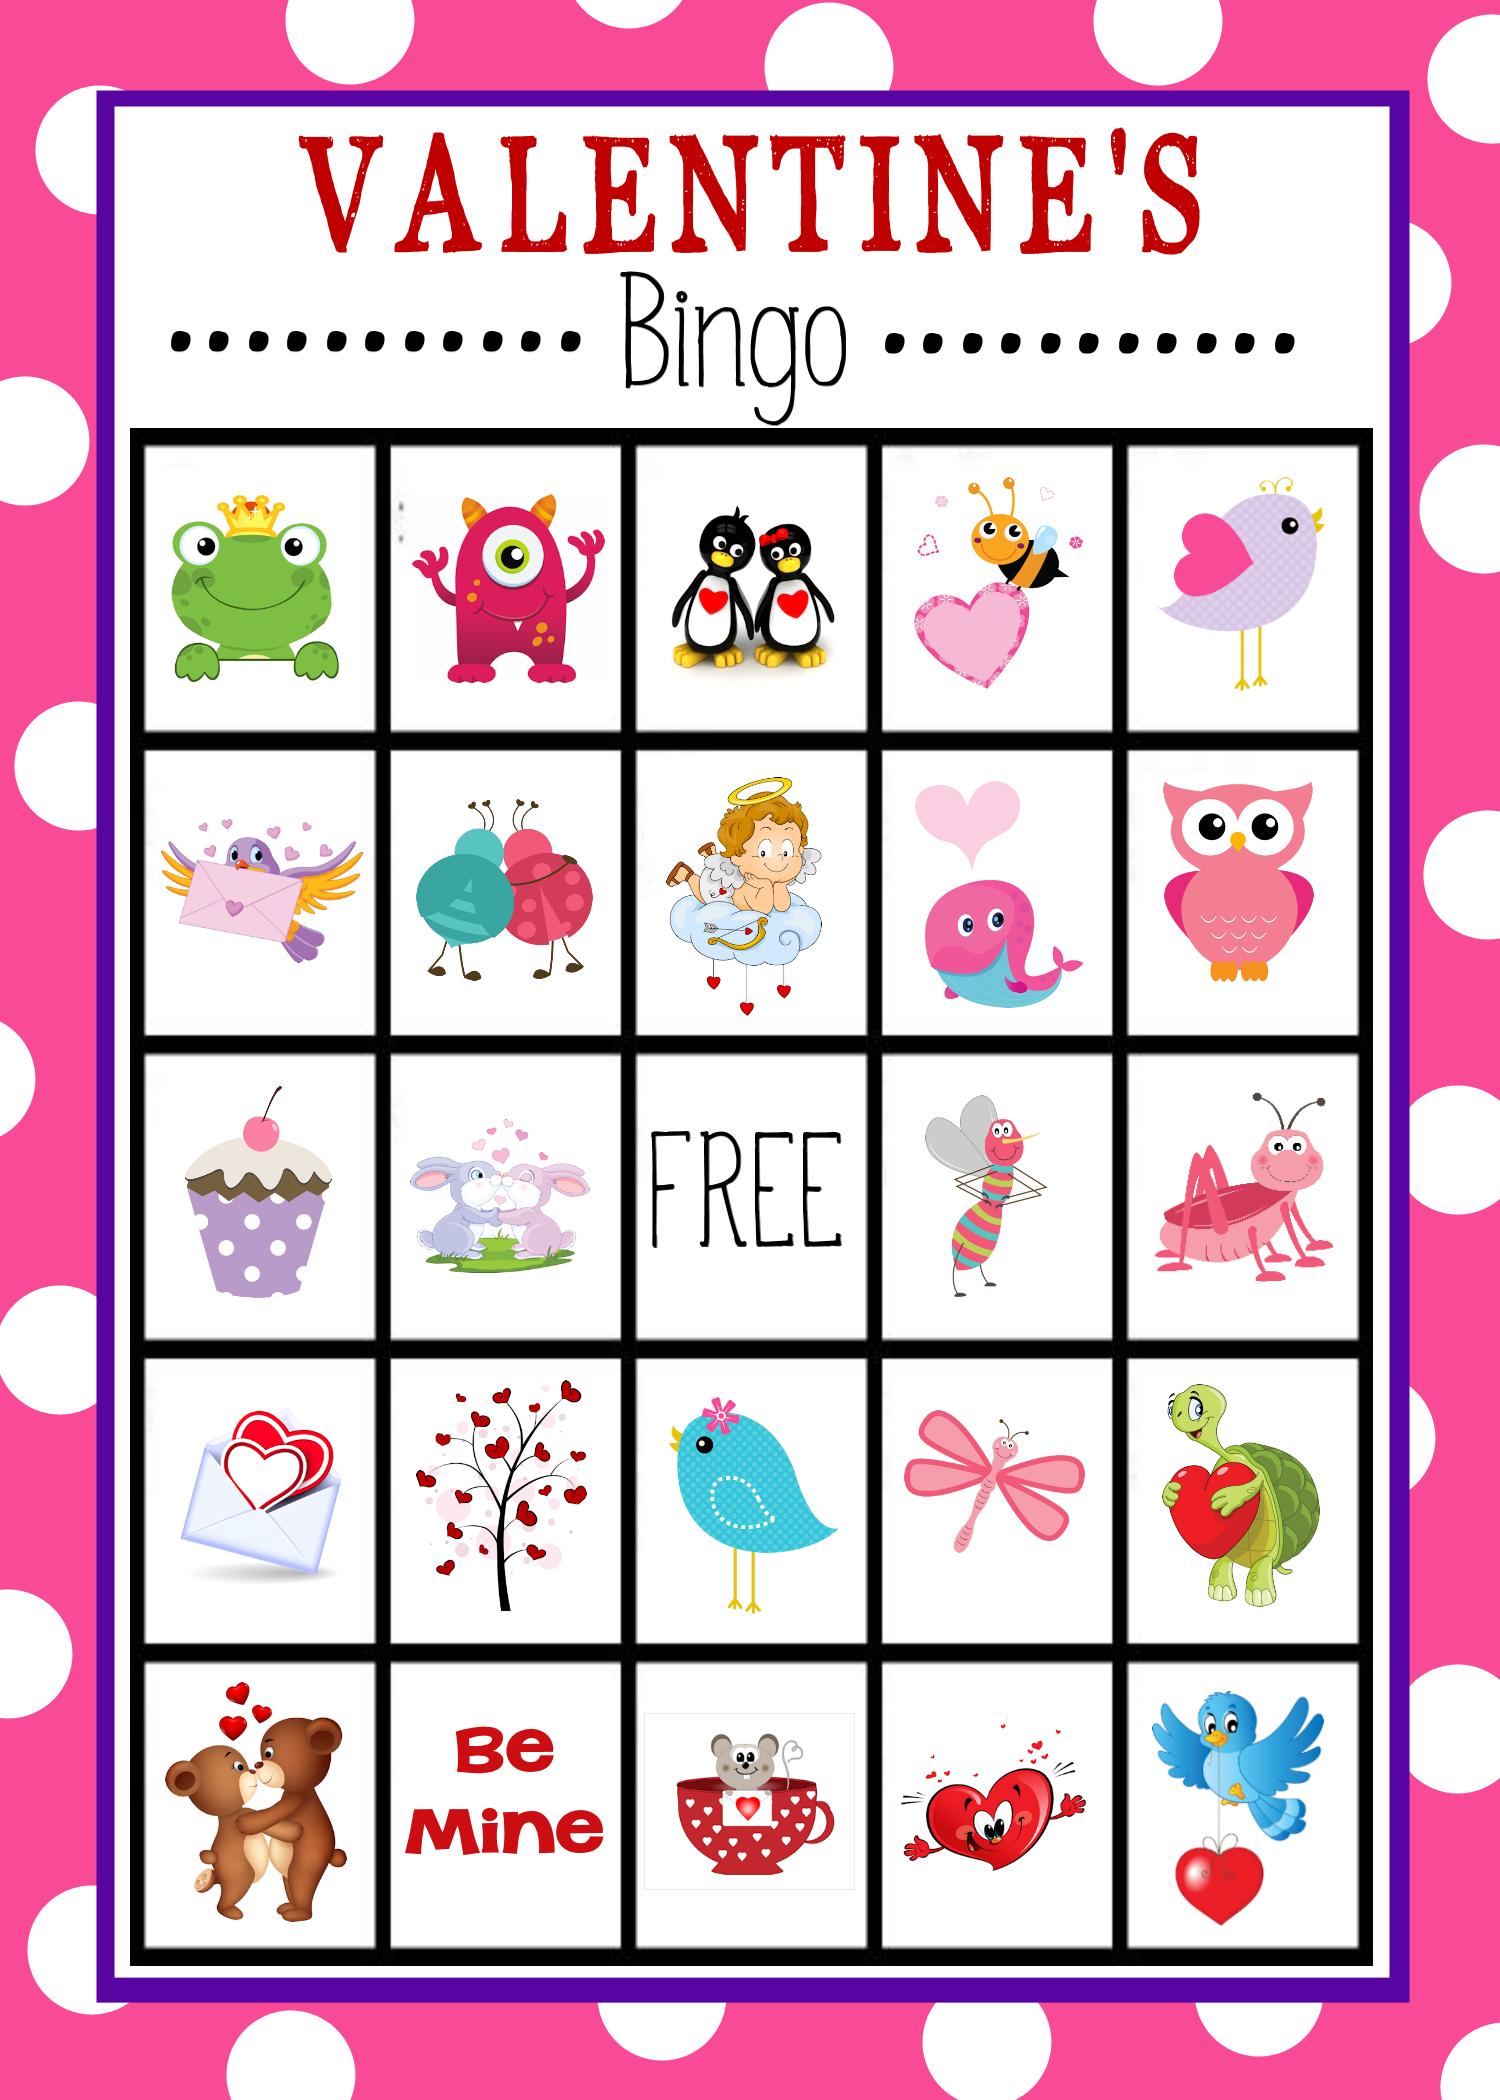 graphic about Printable Valentine Bingo Cards named Valentines Bingo Sport in the direction of Print Participate in Valentine